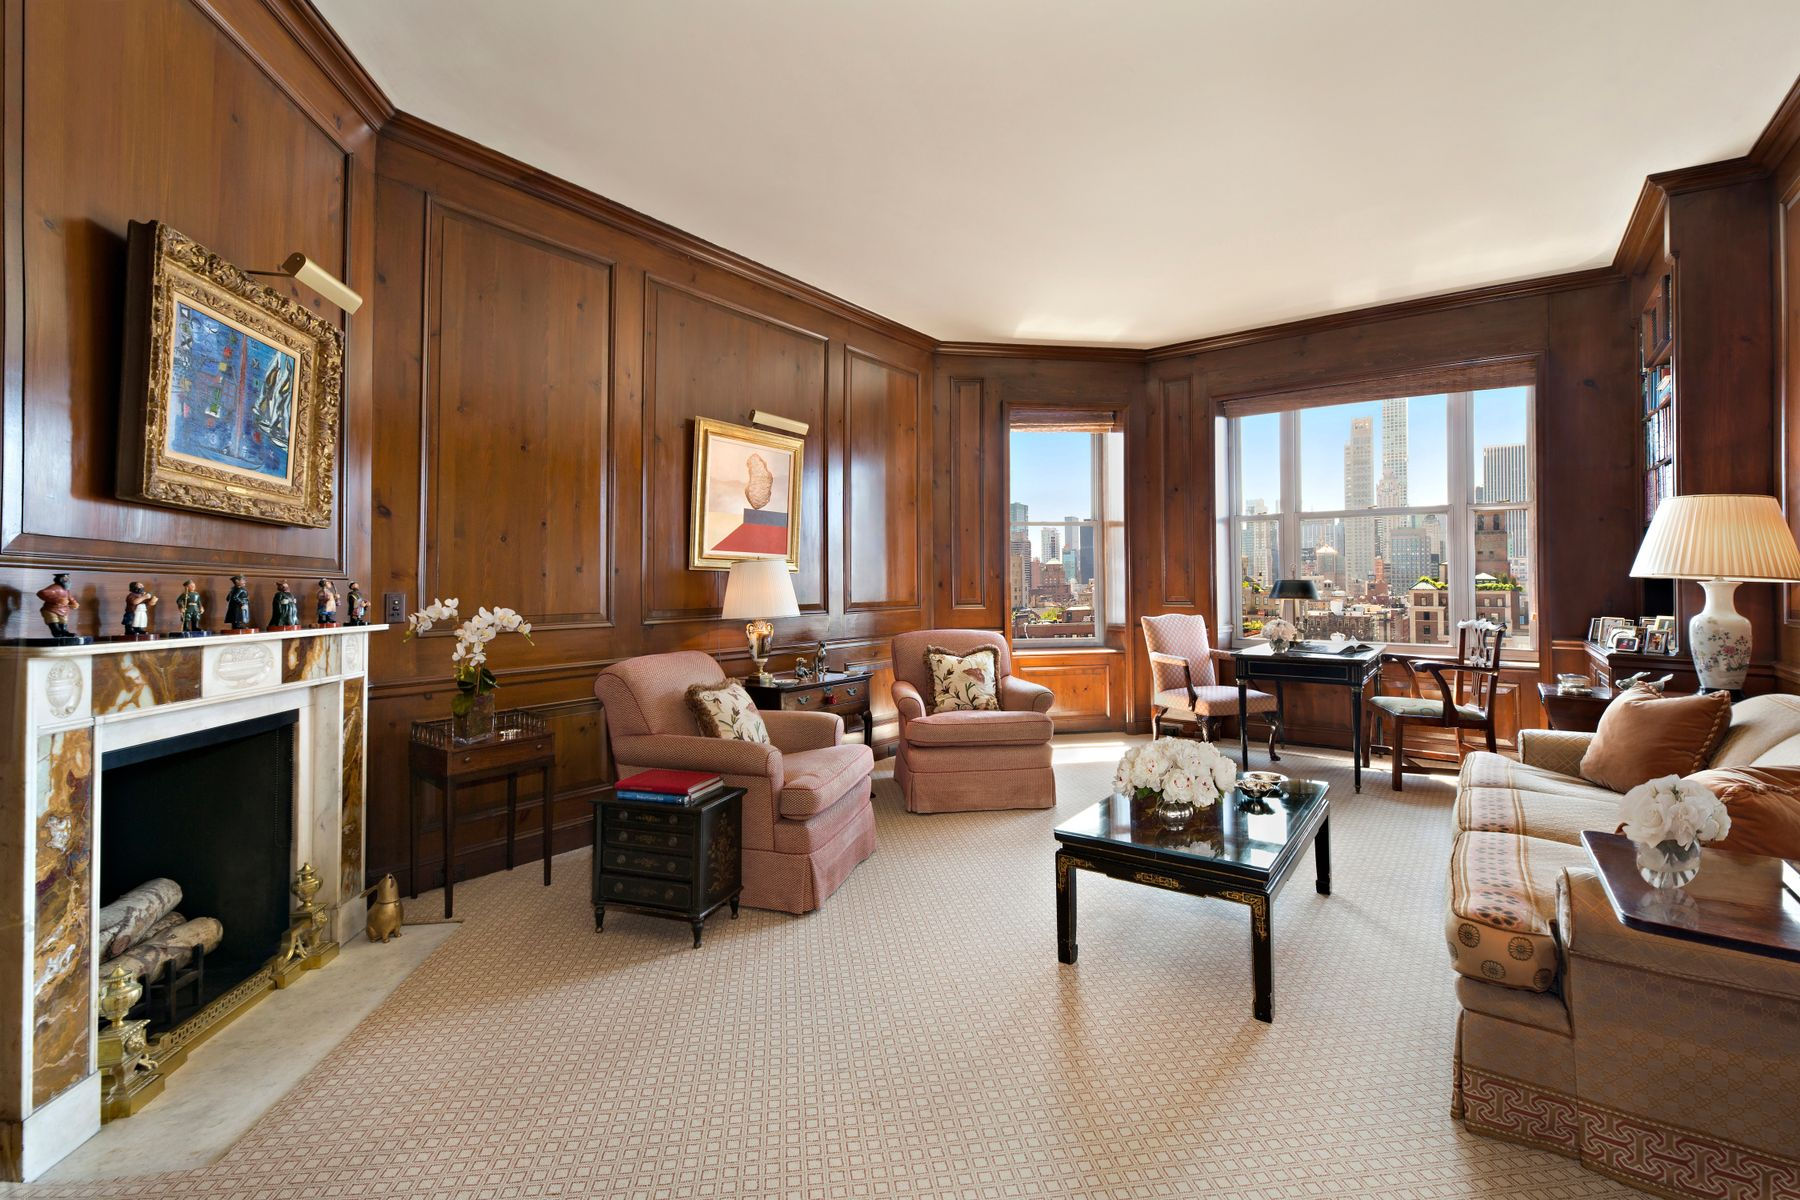 Co-op for Sale at 19 East 72nd Street, 16A 19 East 72nd Street 16A New York, New York 10021 United States